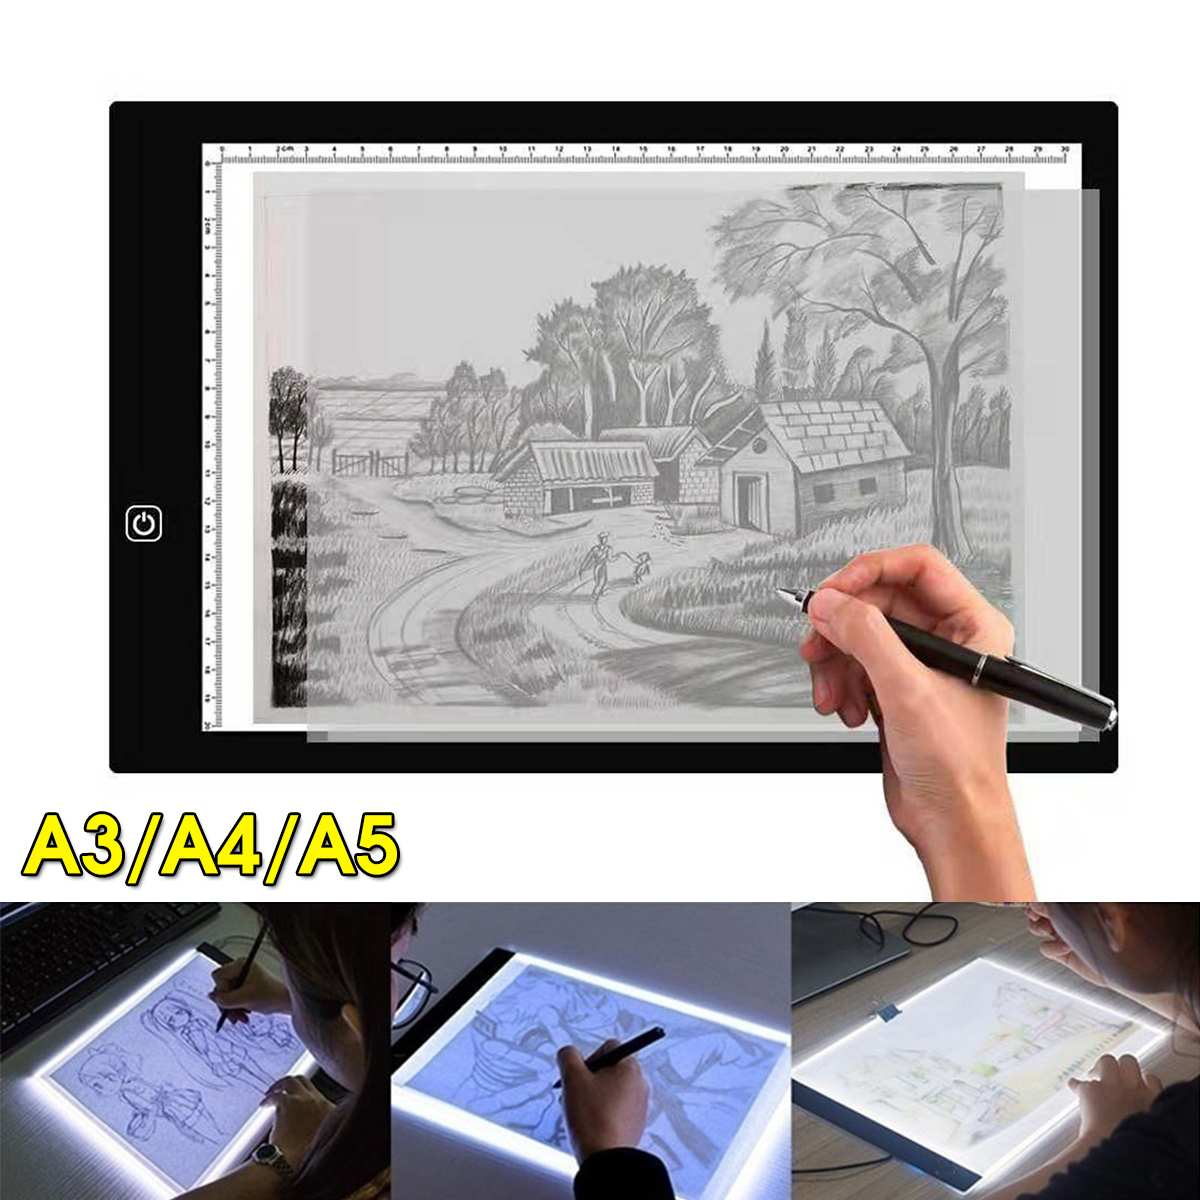 A3/A4/<font><b>A5</b></font> Size Drawing Tablet <font><b>Led</b></font> <font><b>Light</b></font> <font><b>Pad</b></font> Tablet Diamond Painting Eye Protection Bright Copy Board Diamond Embroidery art image